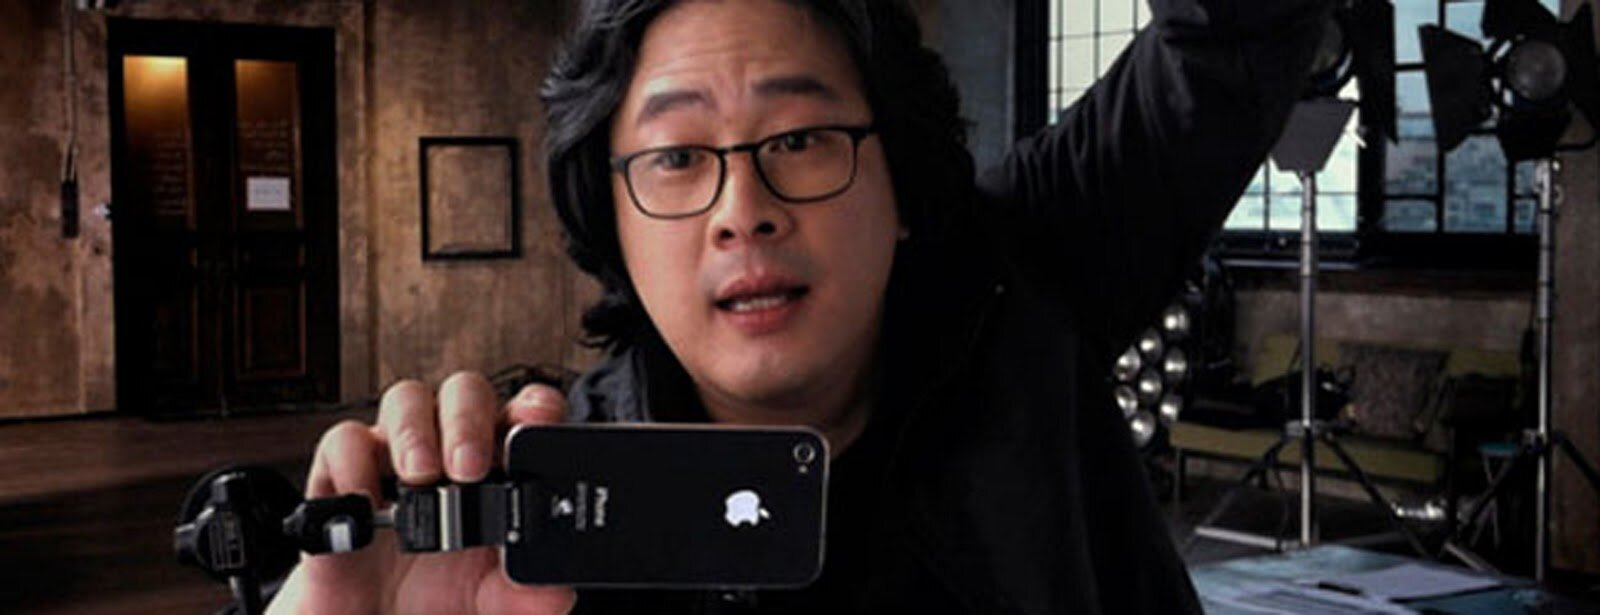 Director Park Chan-wook using iPhone on set